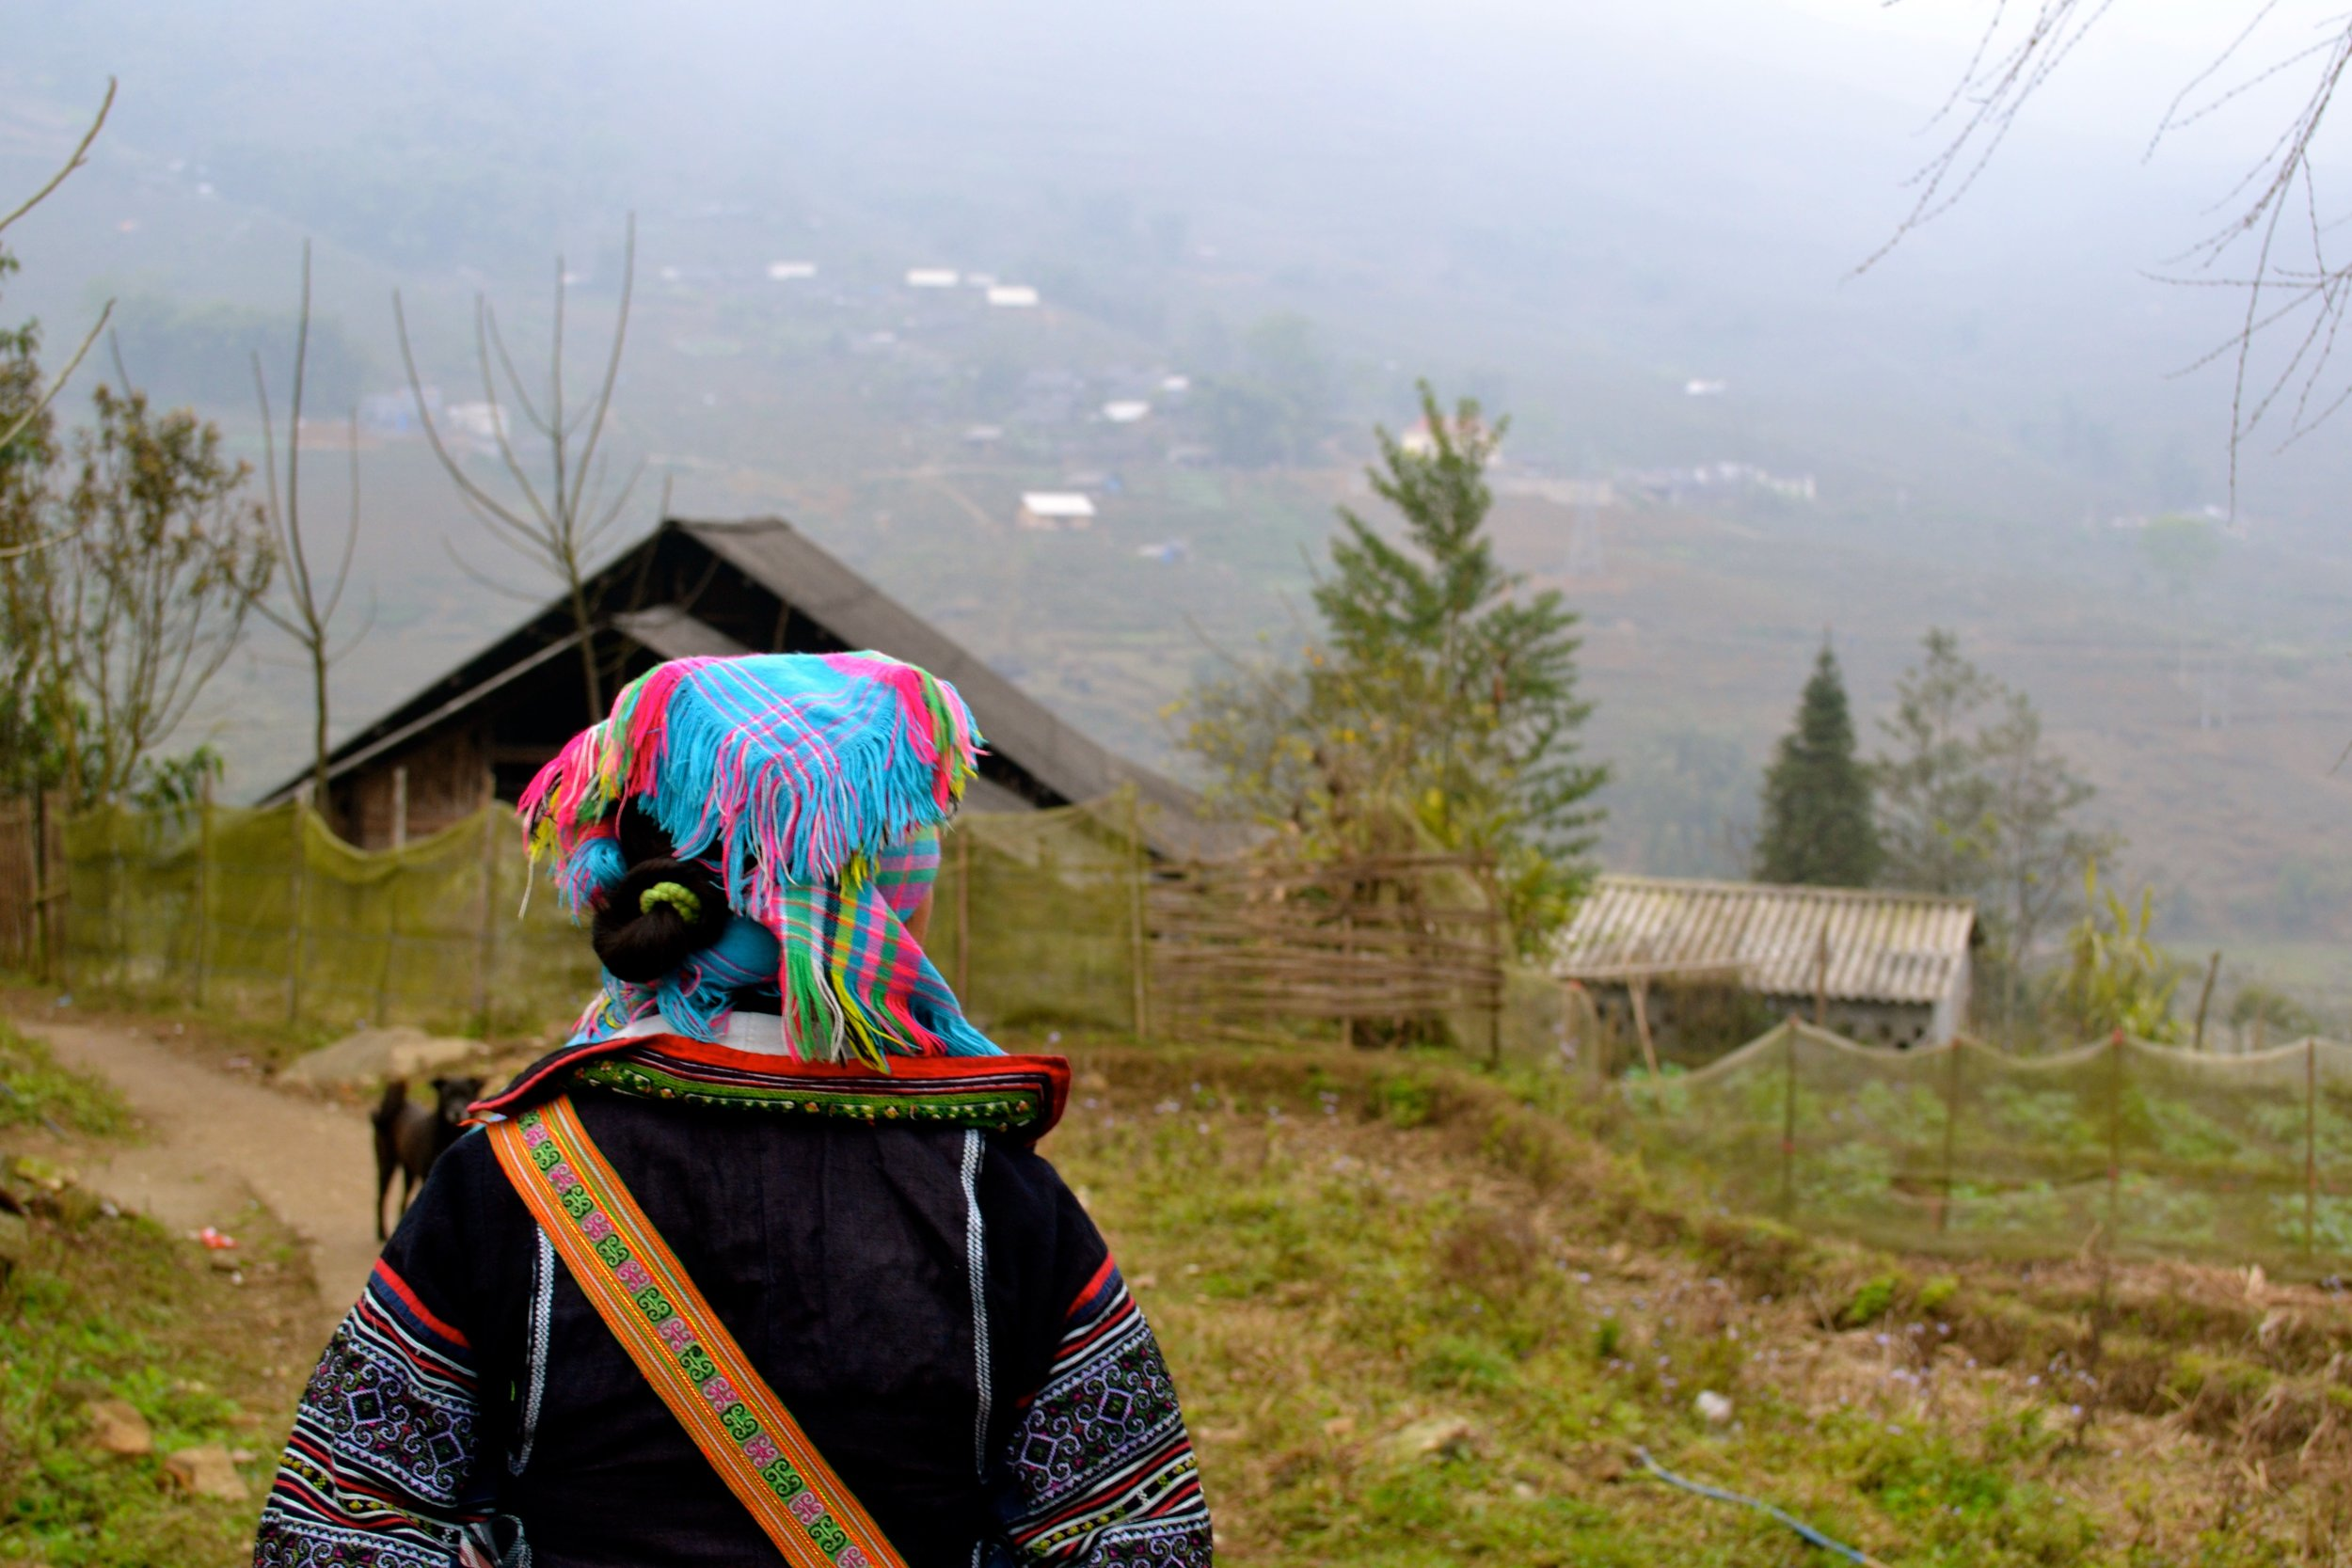 Following our homestay guide in Sapa